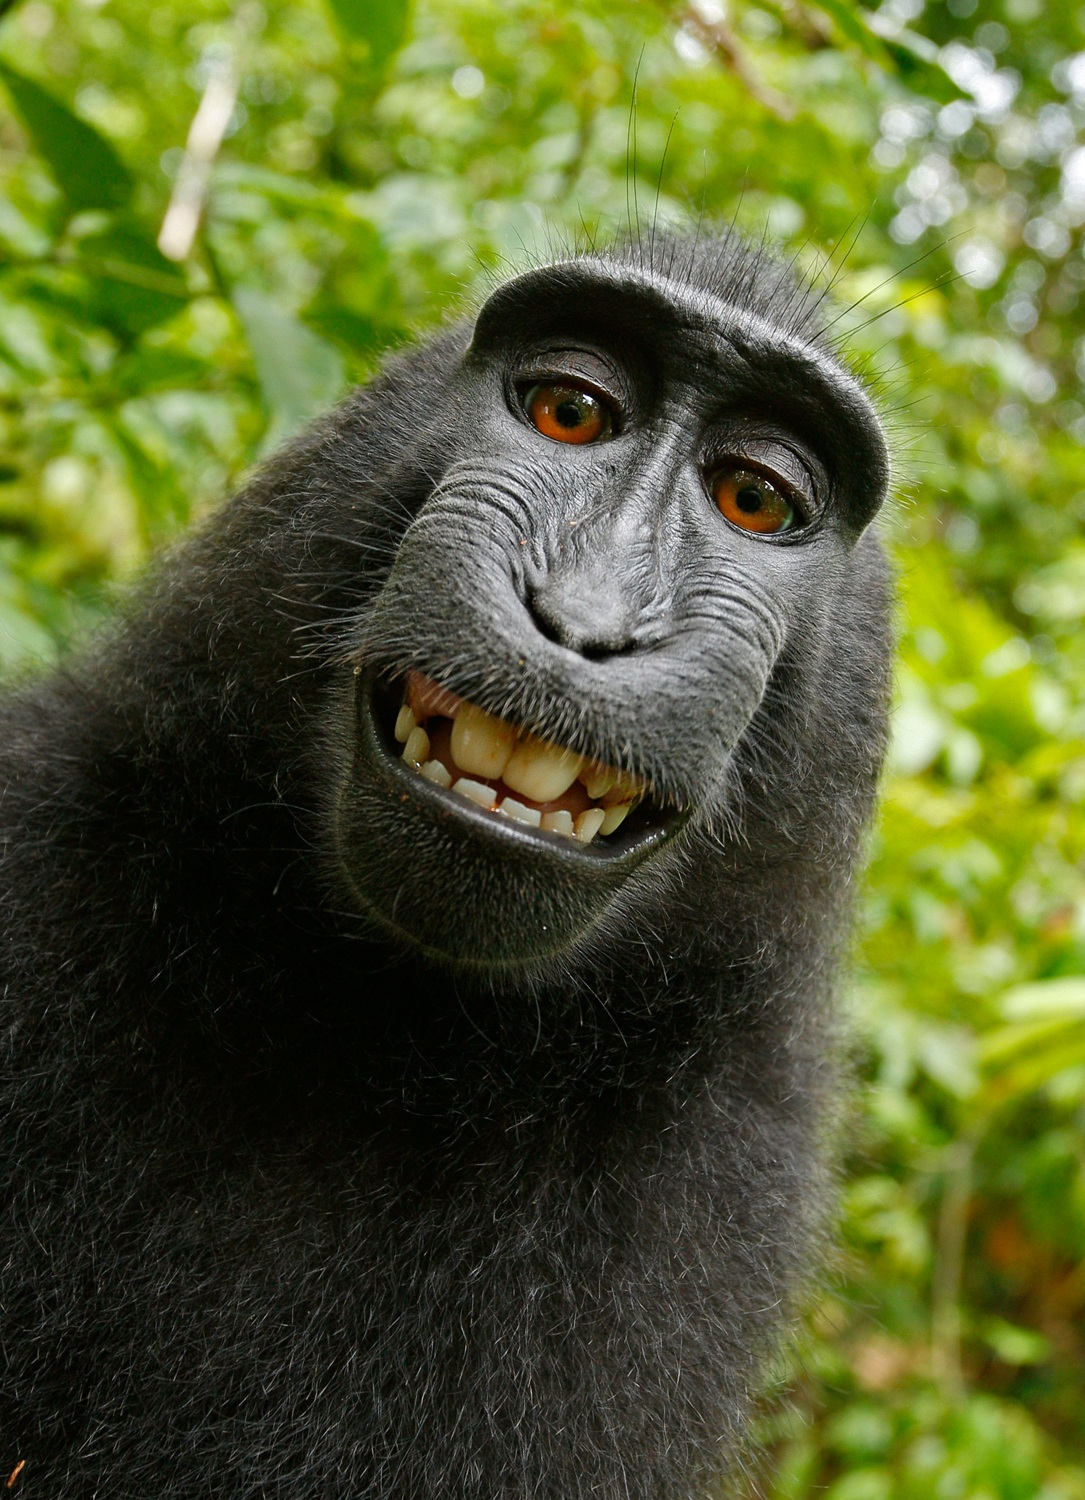 selfie-monkey-self-portrait-macaca-nigra-50582.jpeg (1085×1500)